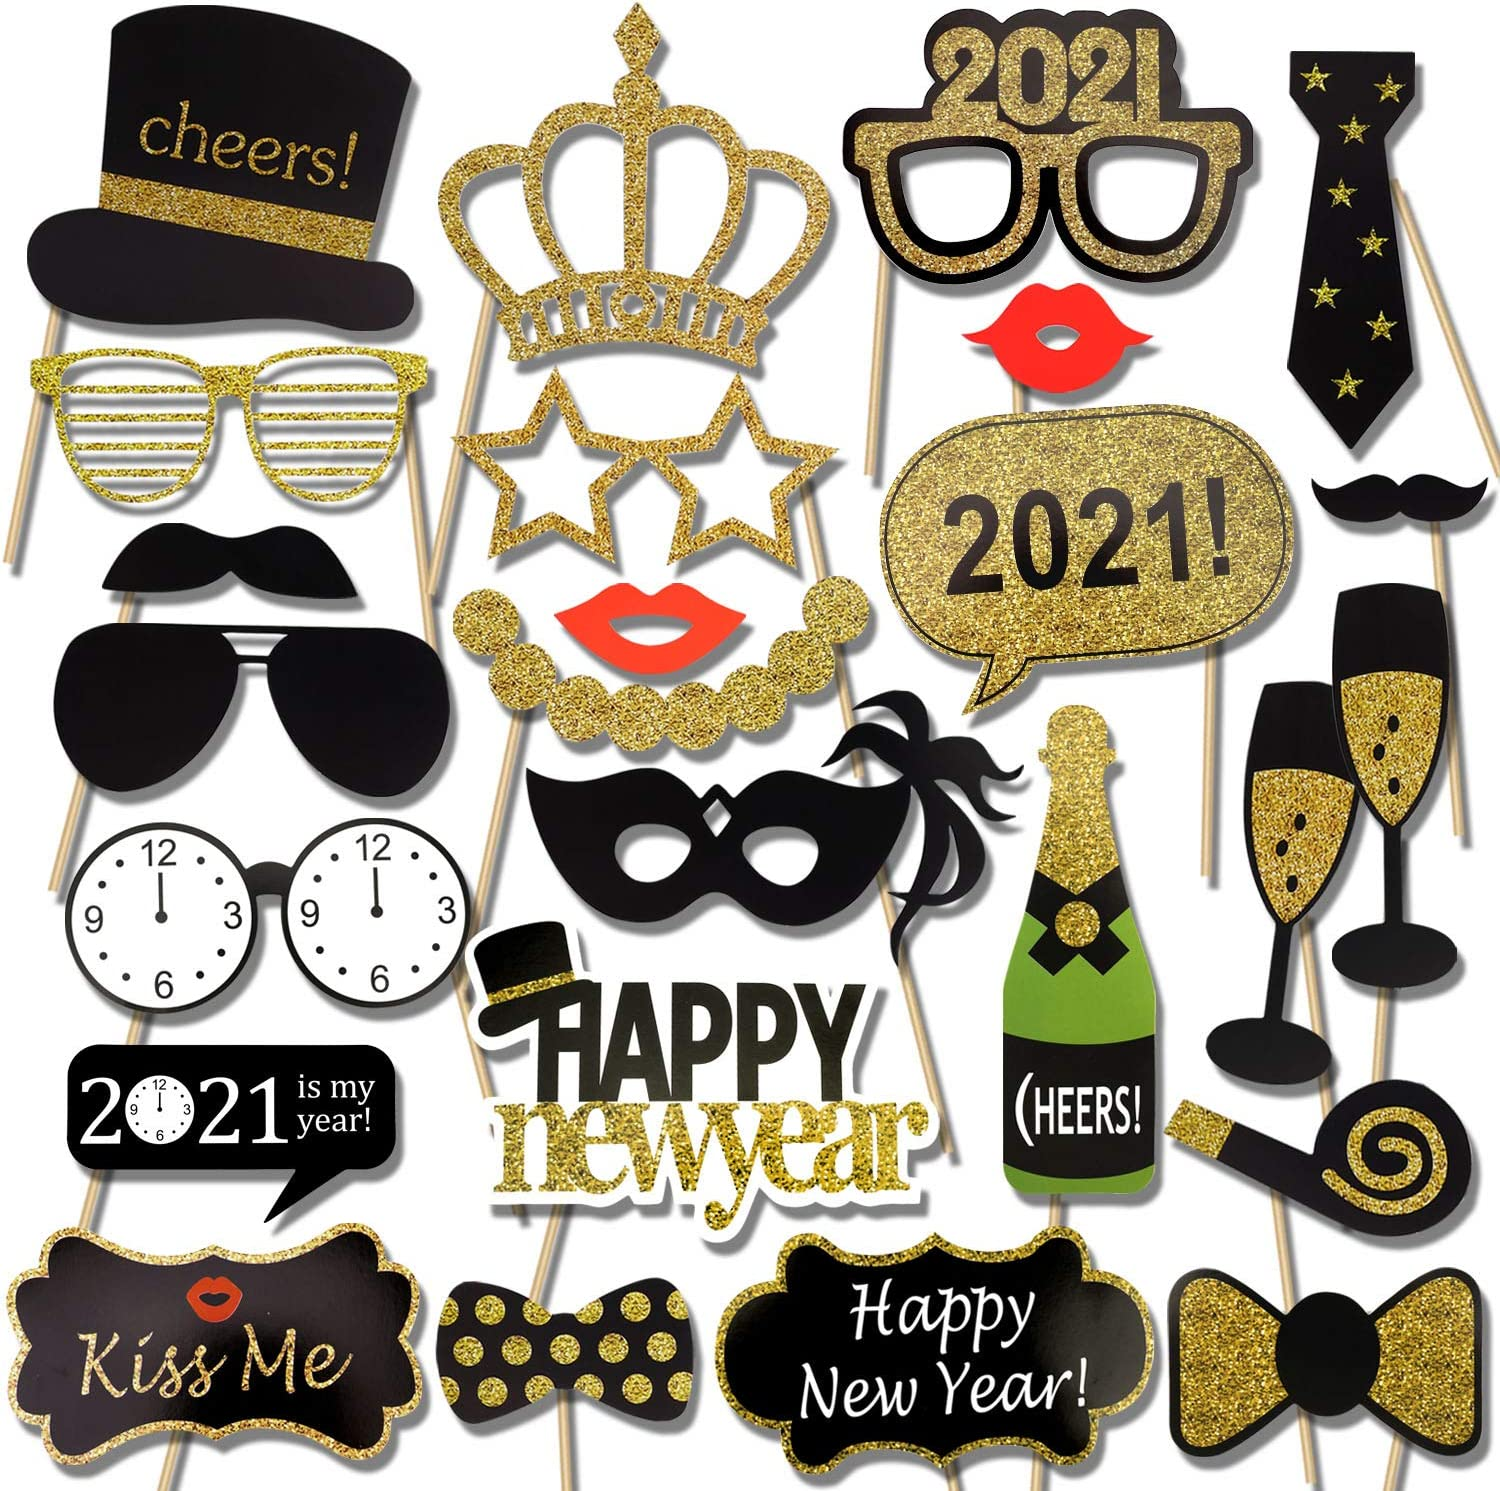 amazon com 2021 new years photo booth props kit 25pcs konsait funny new years eve party photo booth with stick for adult kids women man party accessories for 2021 new year party decor decoration 2021 new years photo booth props kit 25pcs konsait funny new years eve party photo booth with stick for adult kids women man party accessories for